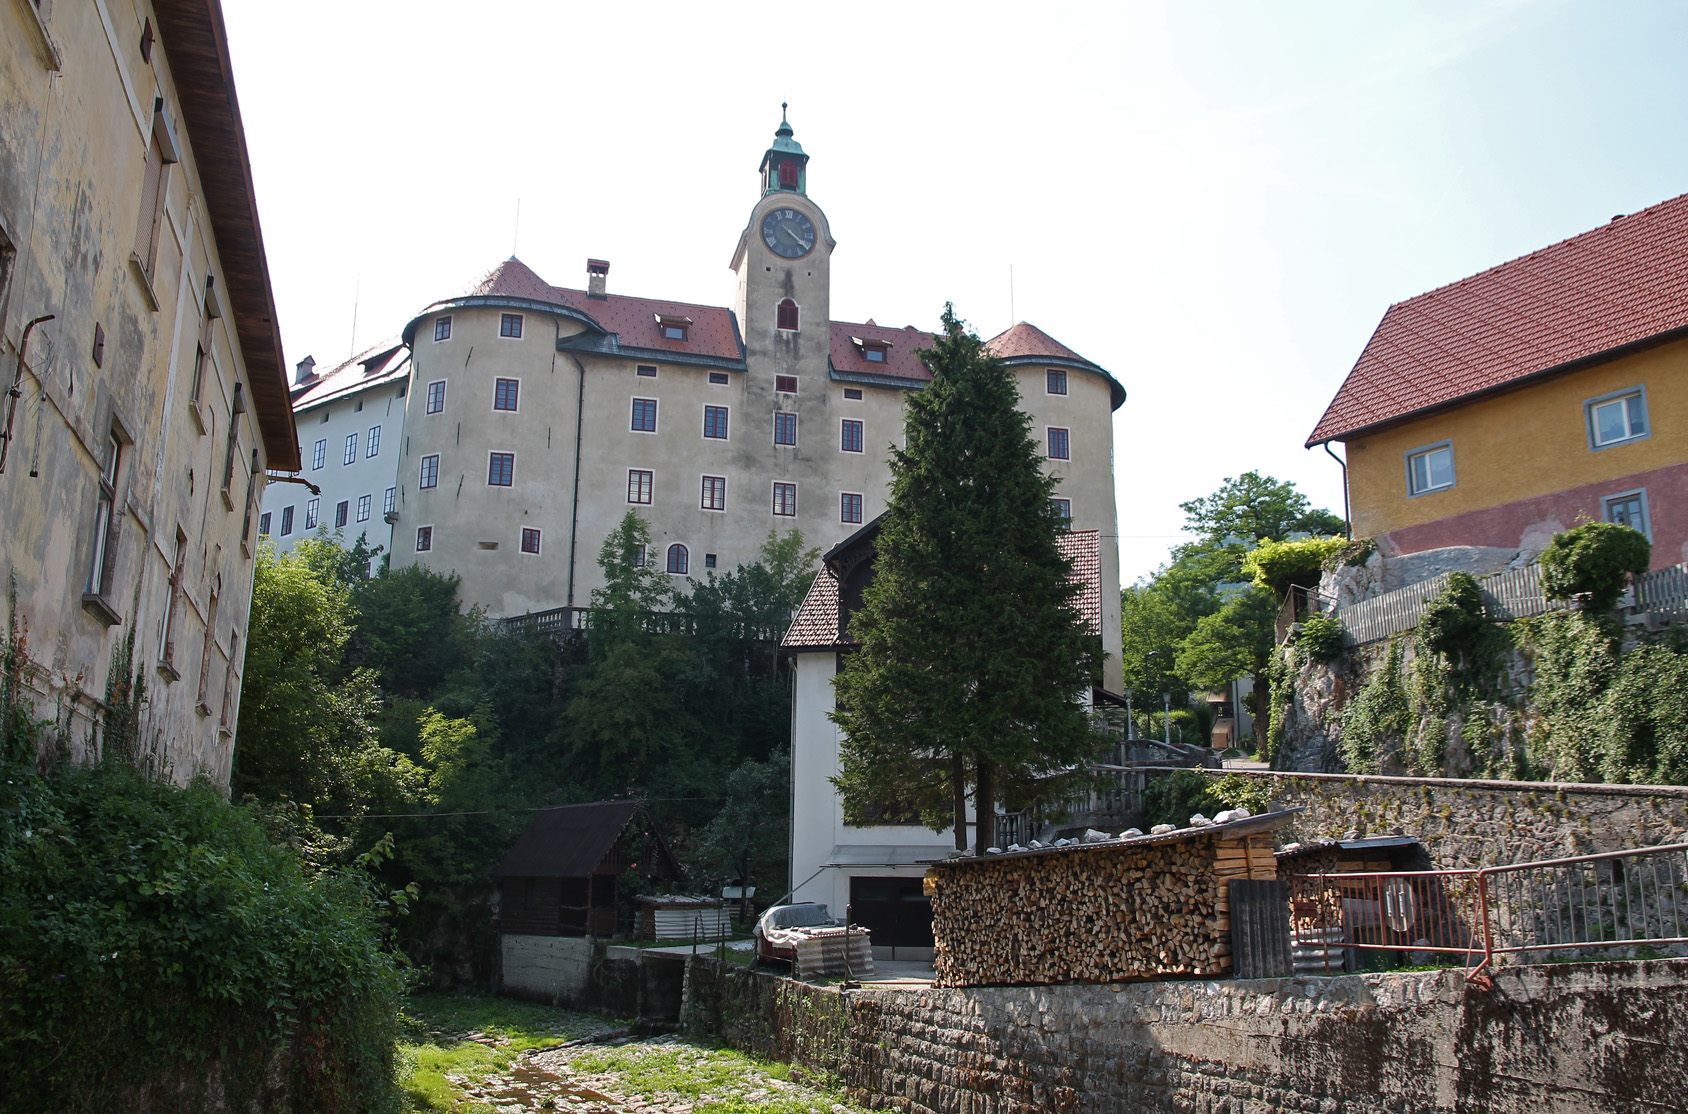 The Gewerkenegg castle: once the administrative headquarters and warehouse of the Idrija mine, now a museum.